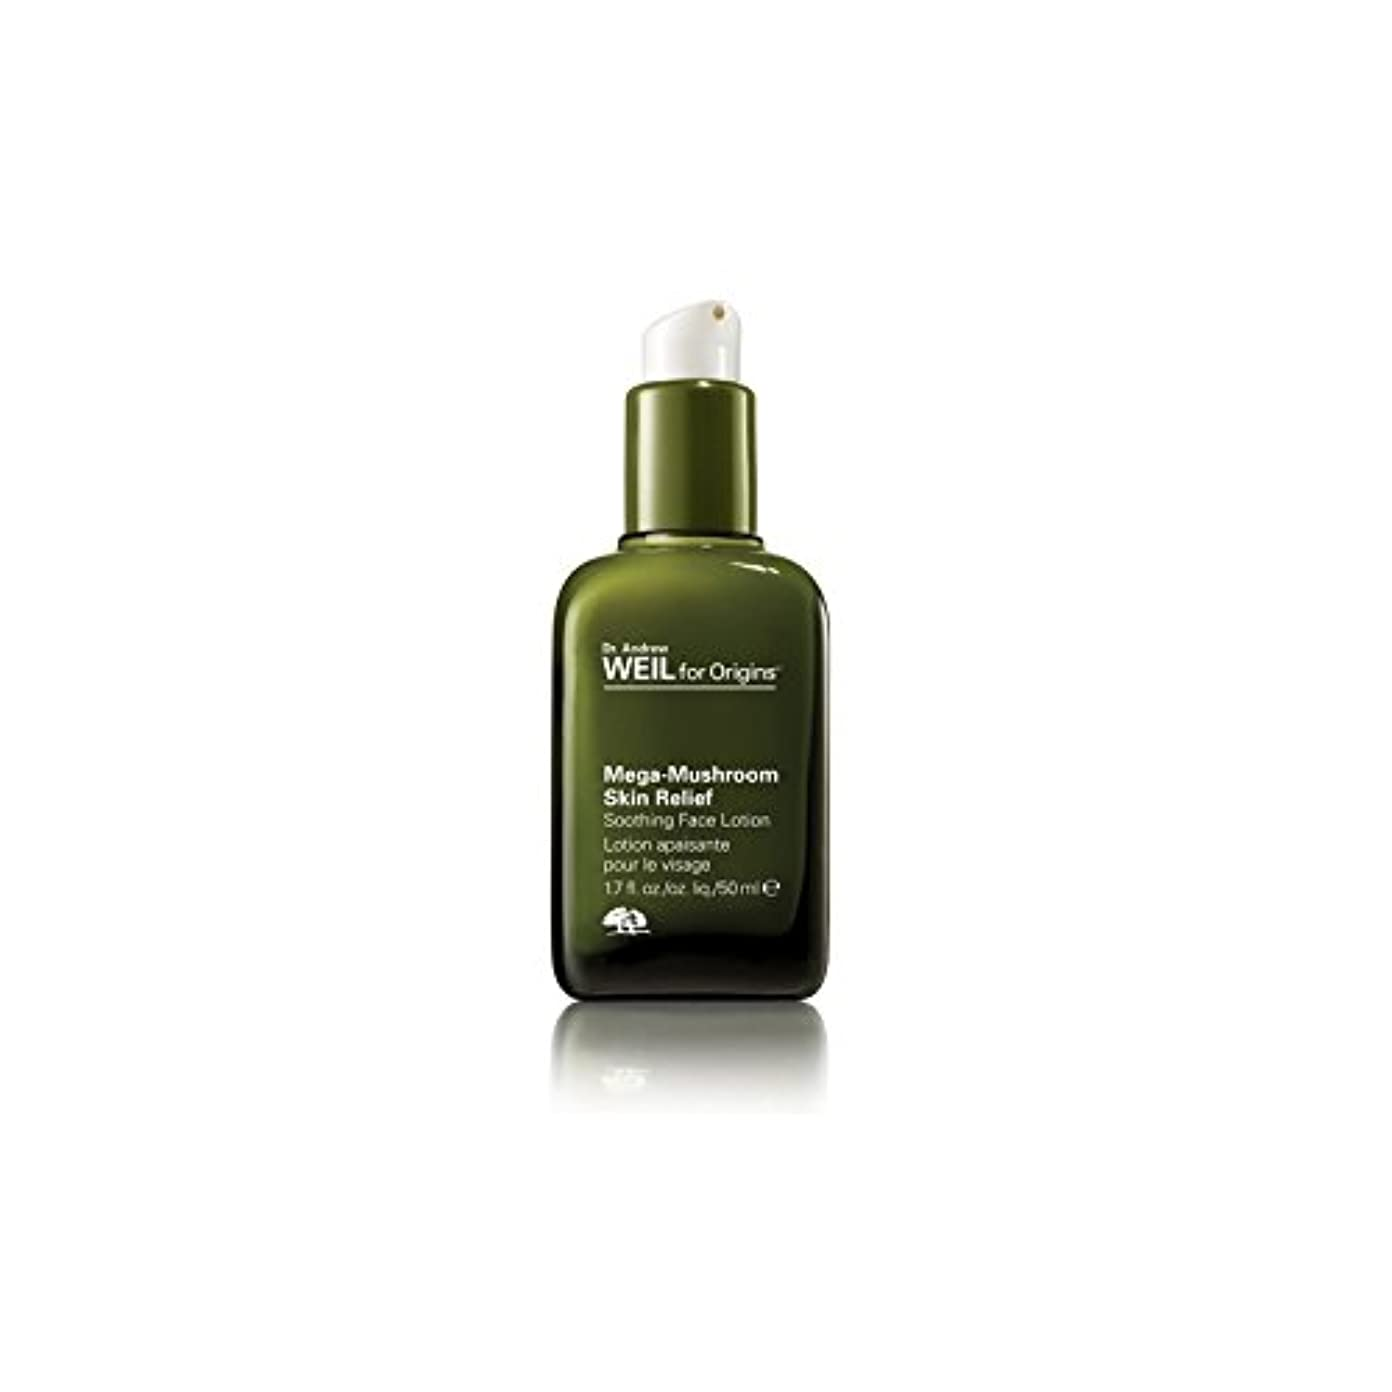 小康規制結婚Origins Dr. Andrew Weil For Origins Mega-Mushroom Skin Relief Soothing Face Lotion 50ml (Pack of 6) - 起源アンドルー?ワイル...